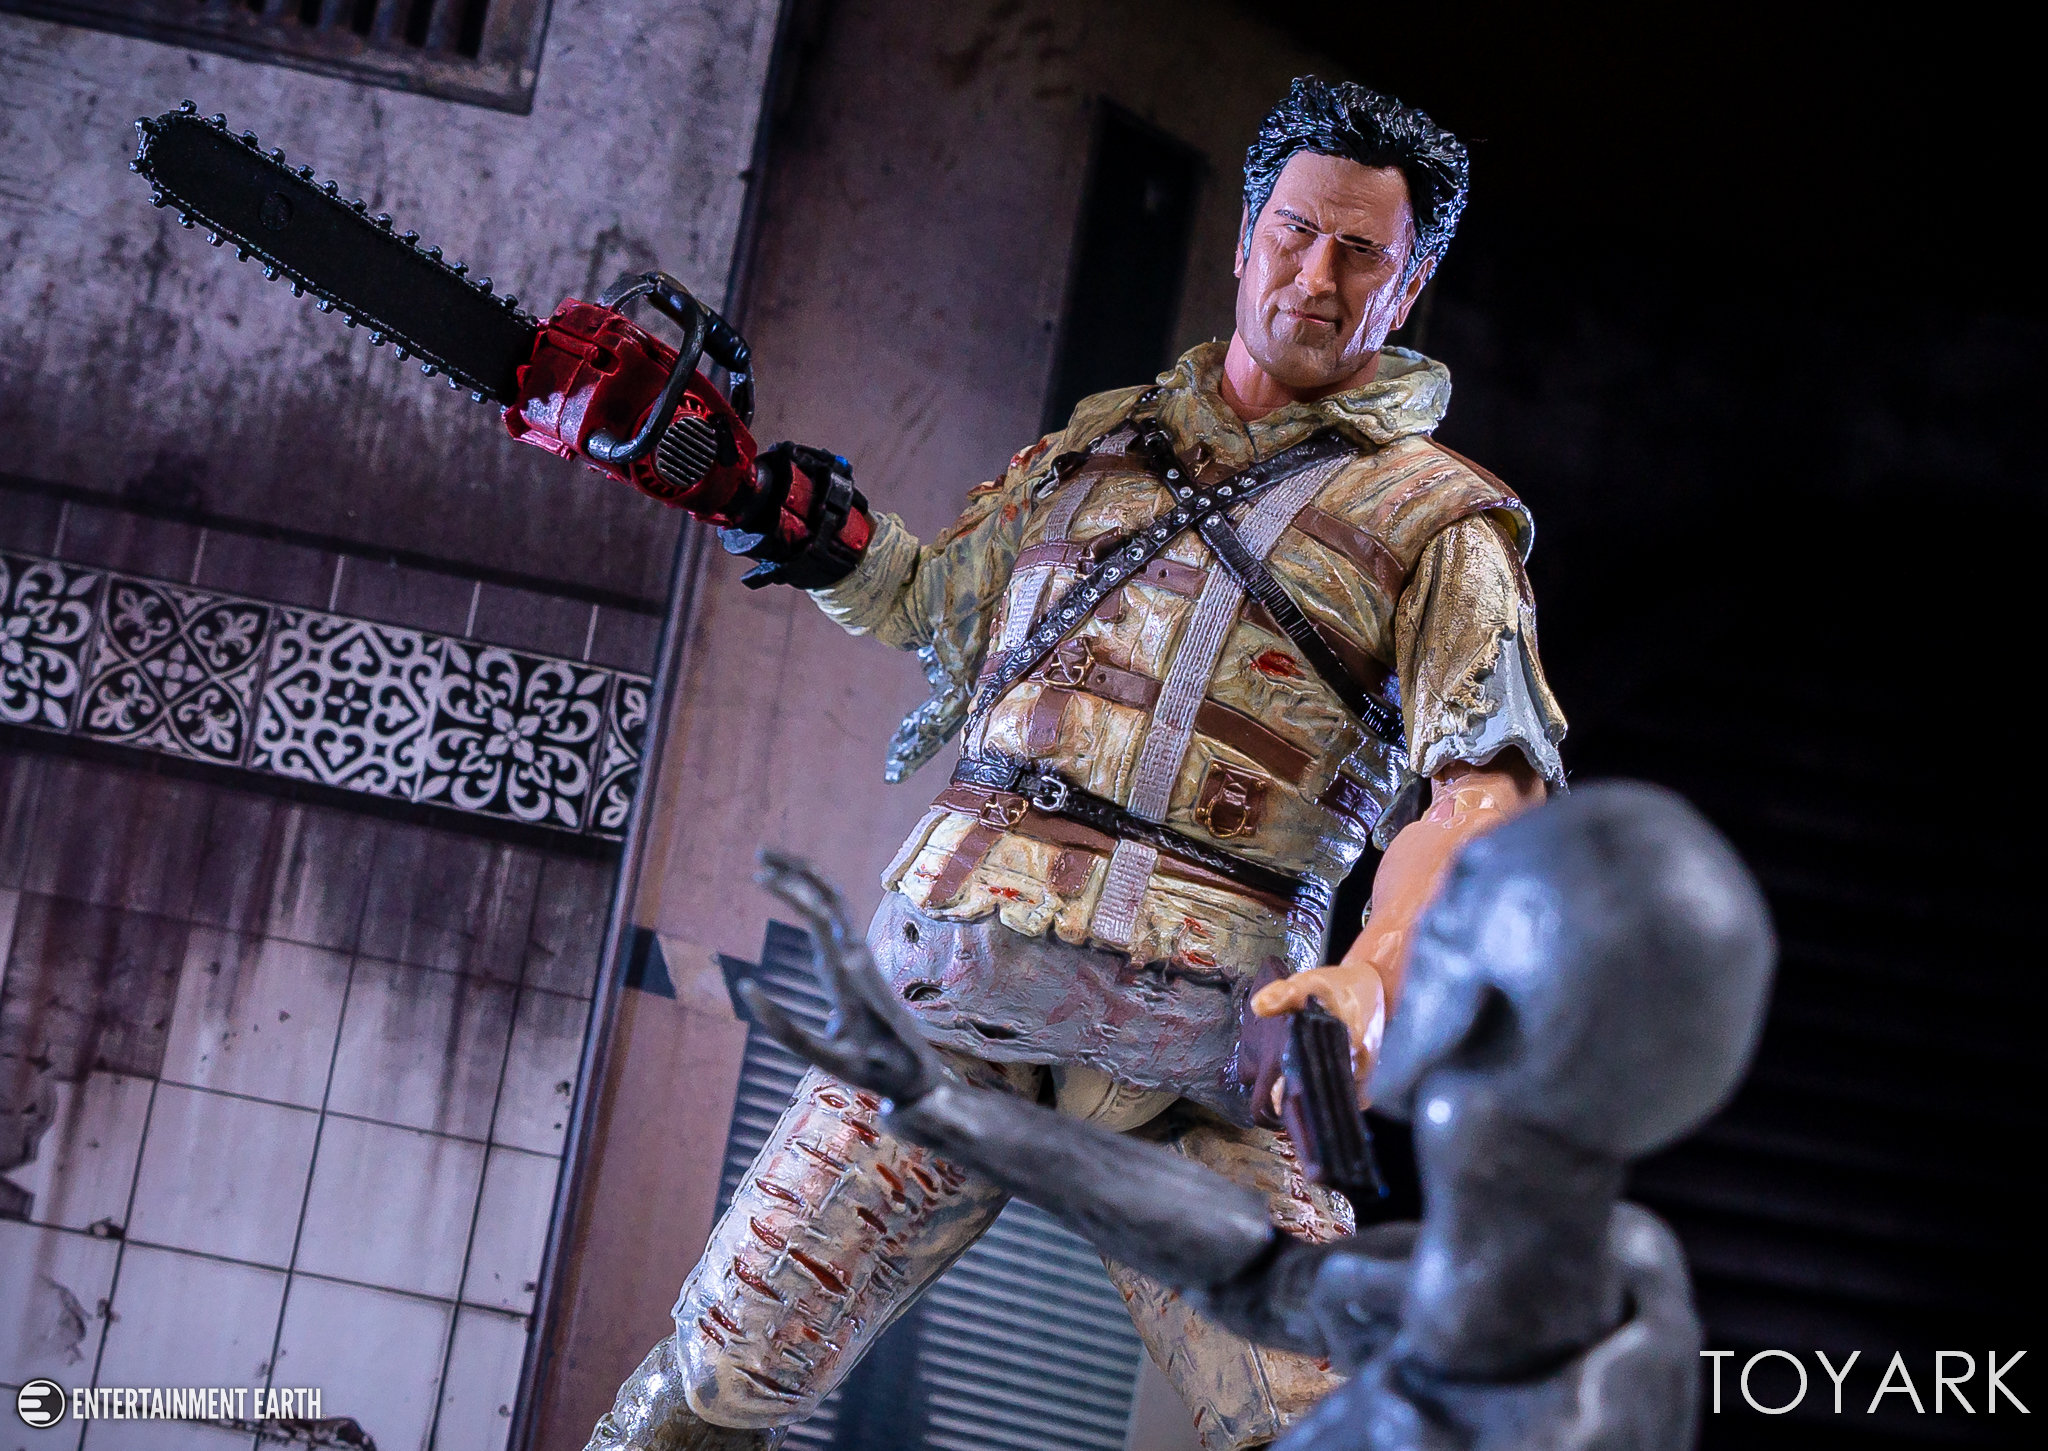 http://news.toyark.com/wp-content/uploads/sites/4/2018/04/Ash-vs-Evil-Dead-Series-2-NECA-058.jpg